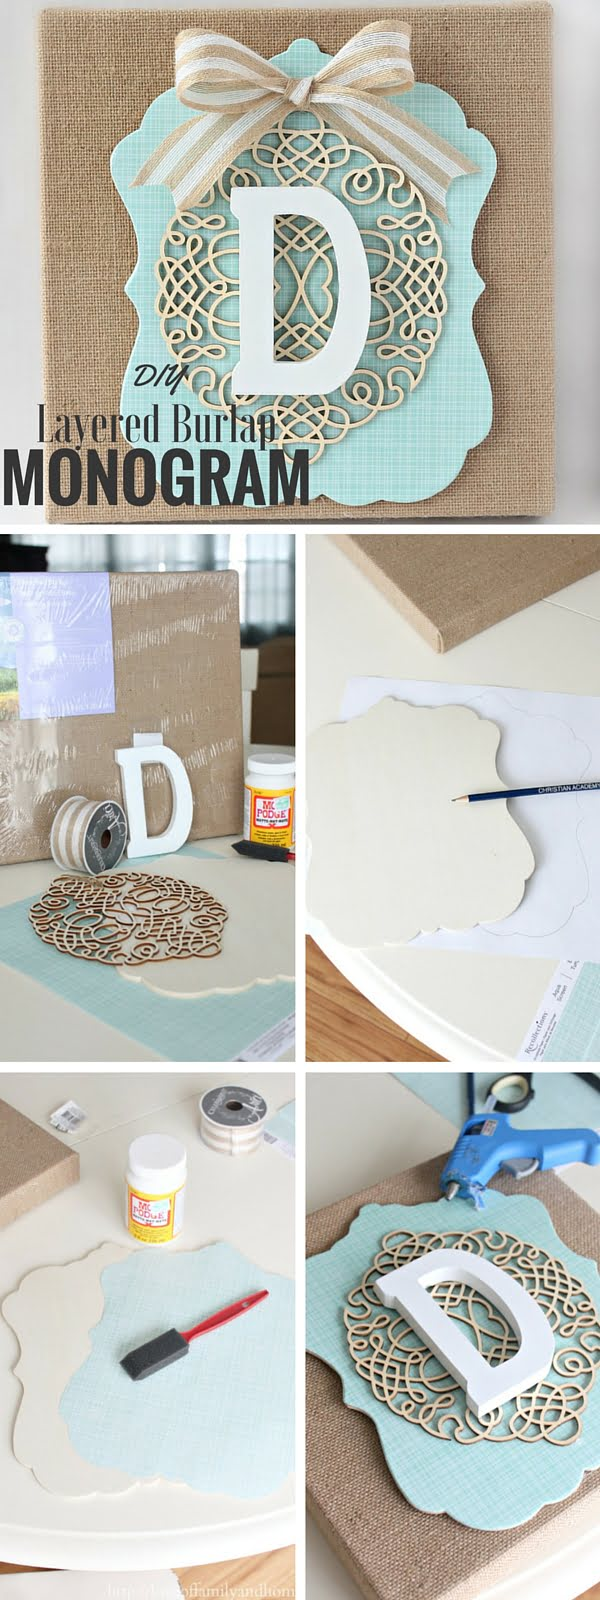 Check out the tutorial:  Layered Burlap Monogram